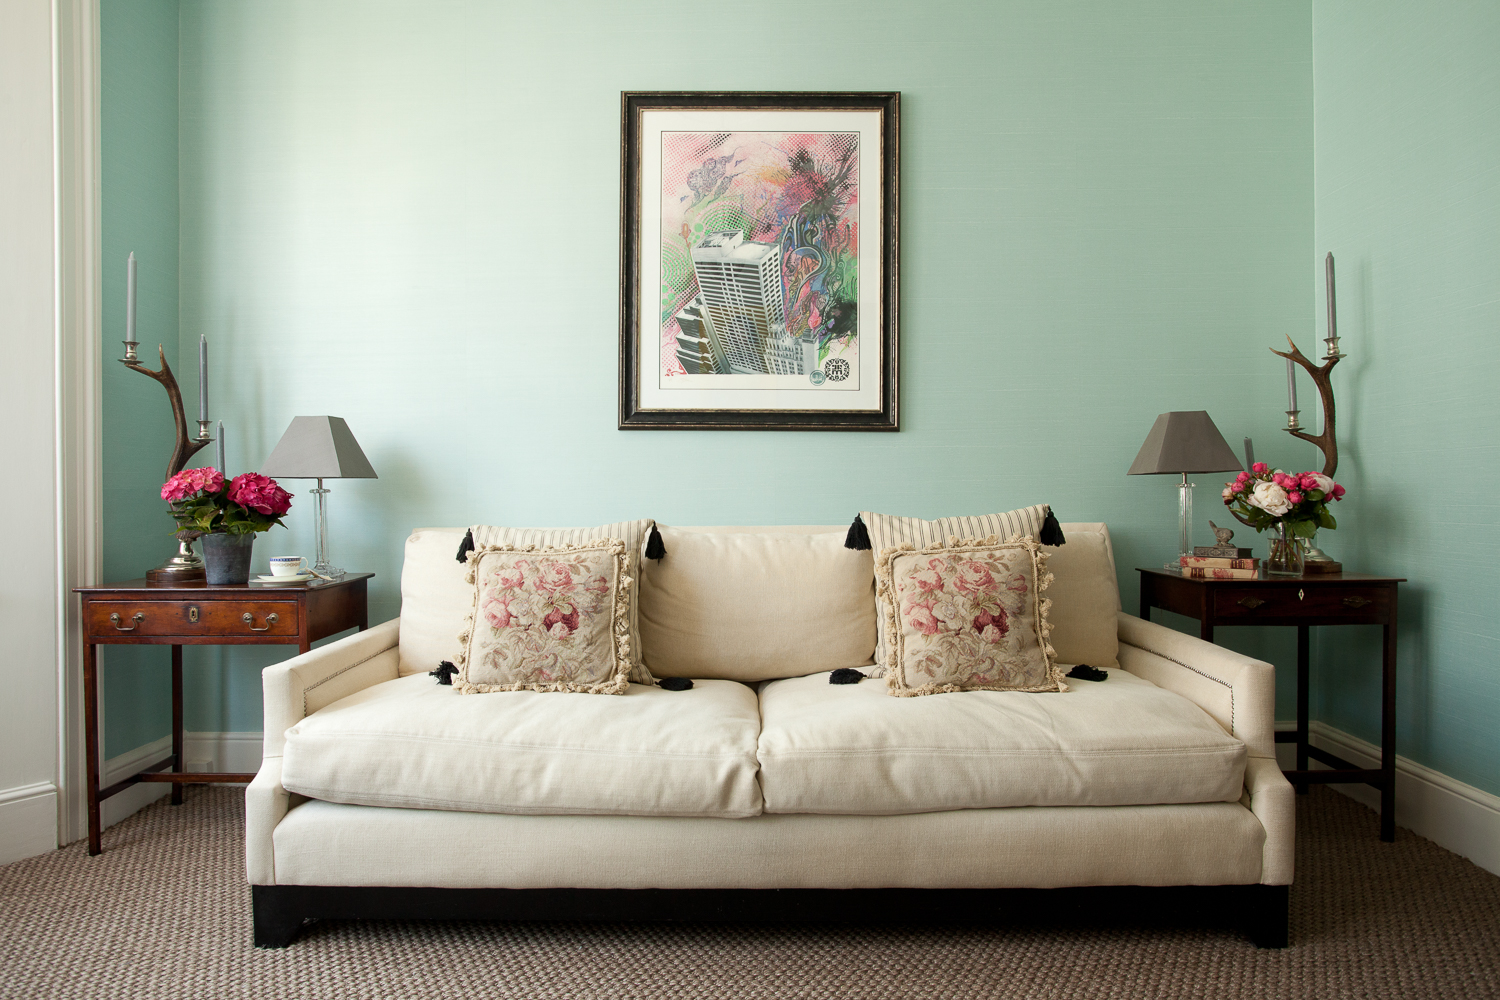 photograph of sofa in living room, green walls